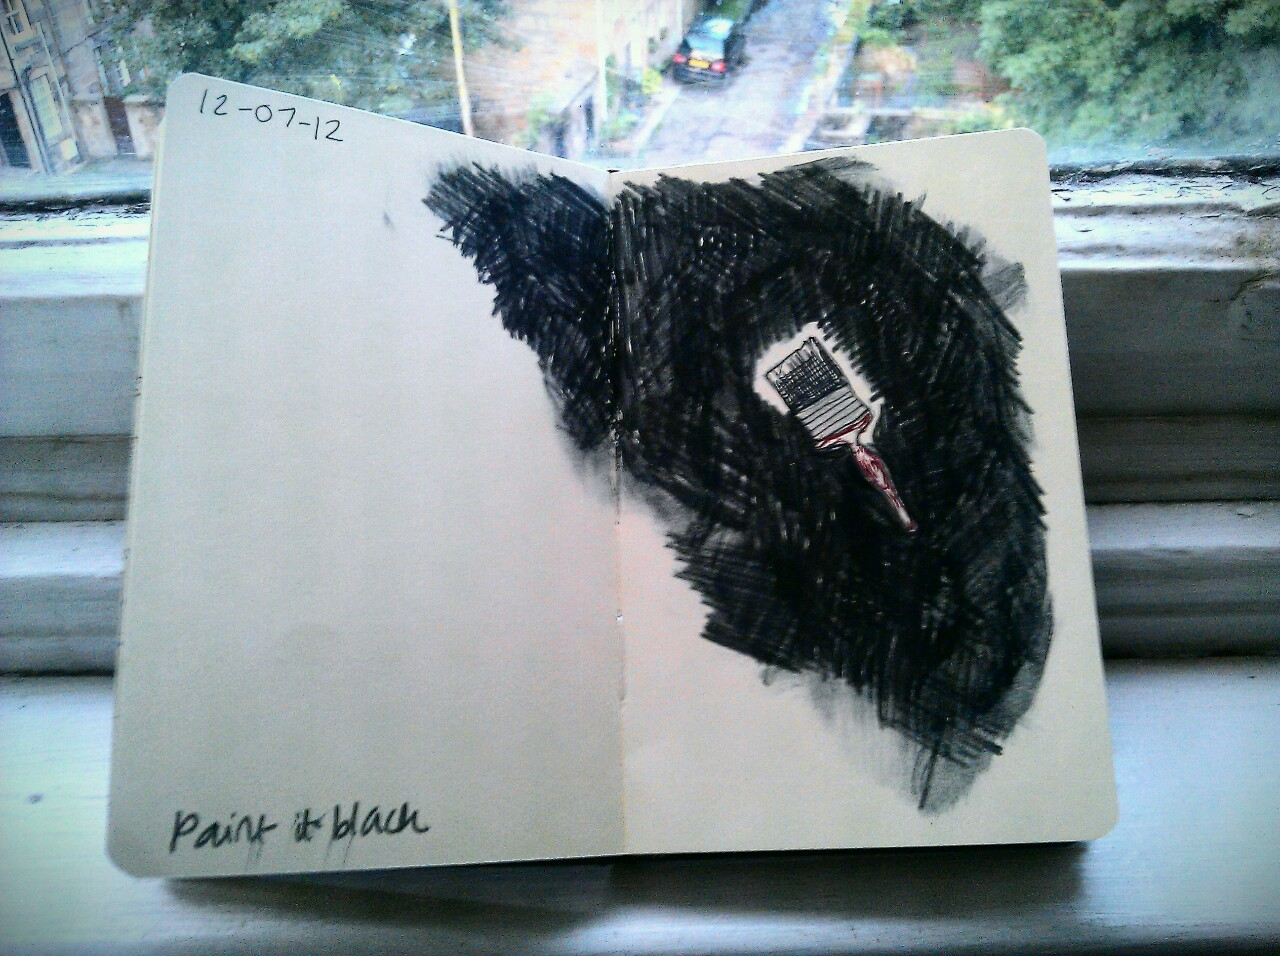 365 drawings later … day 163 … paint it black